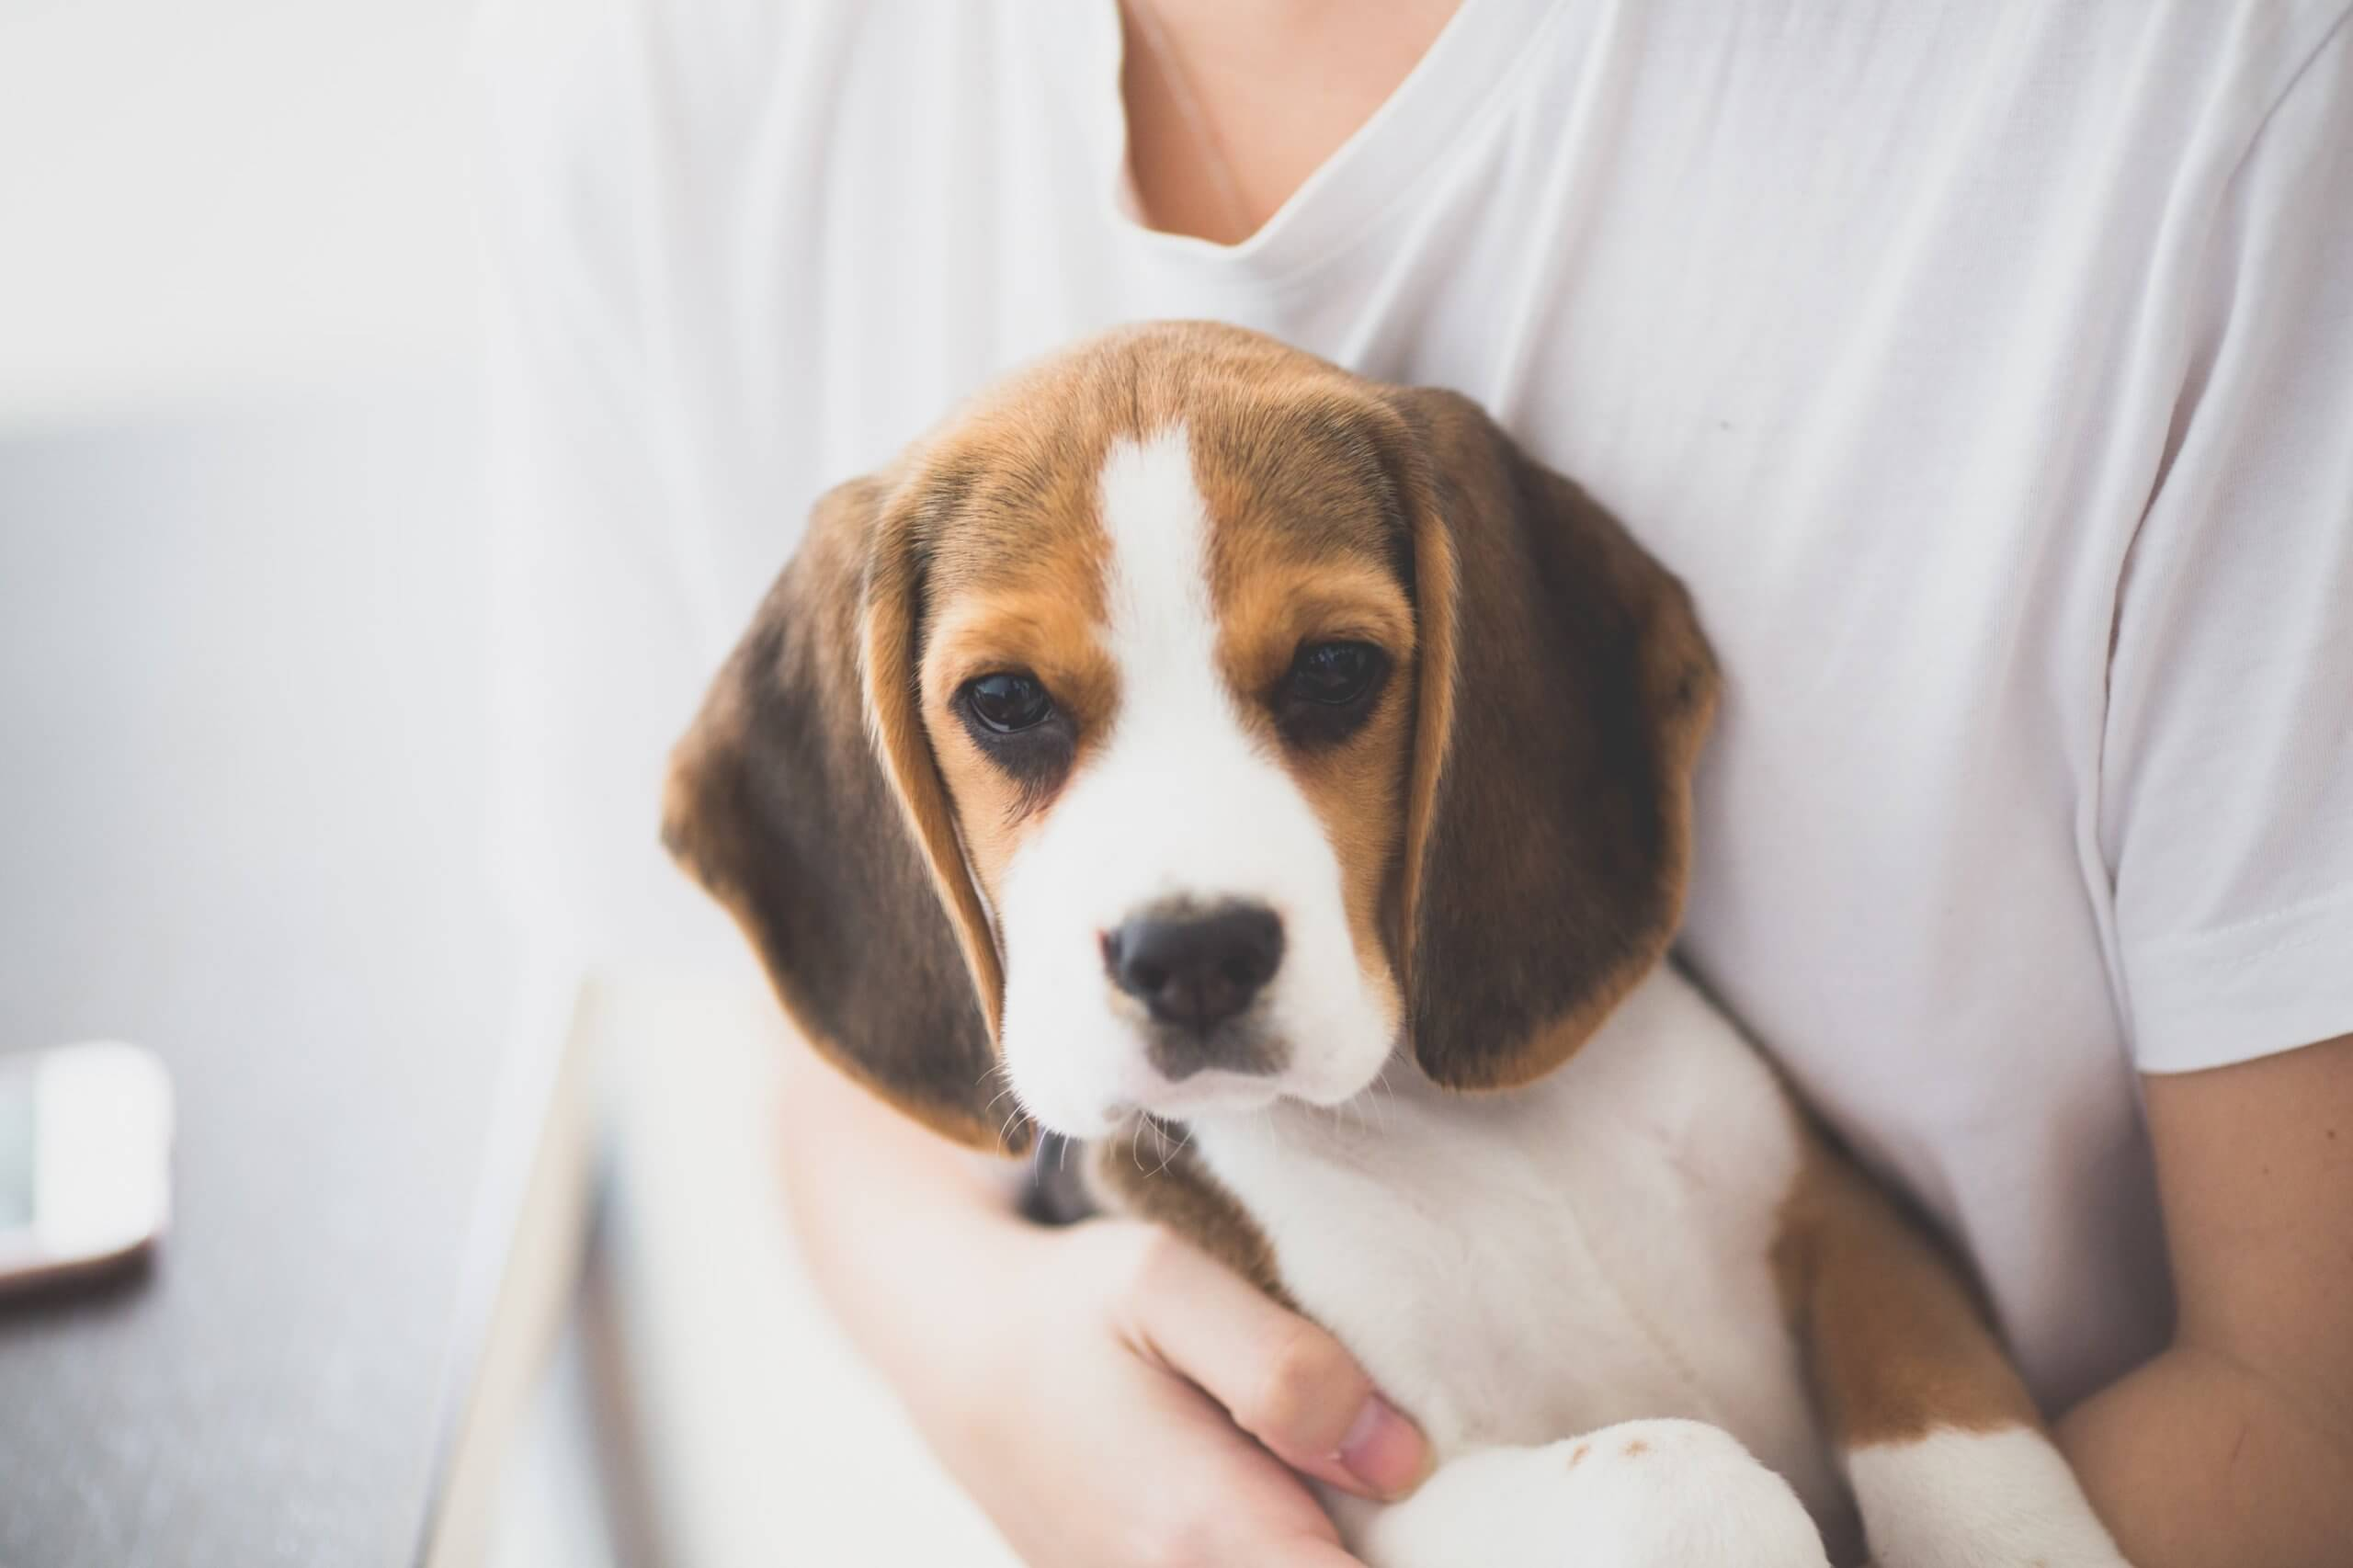 Protect Your Pet From Household Poisons